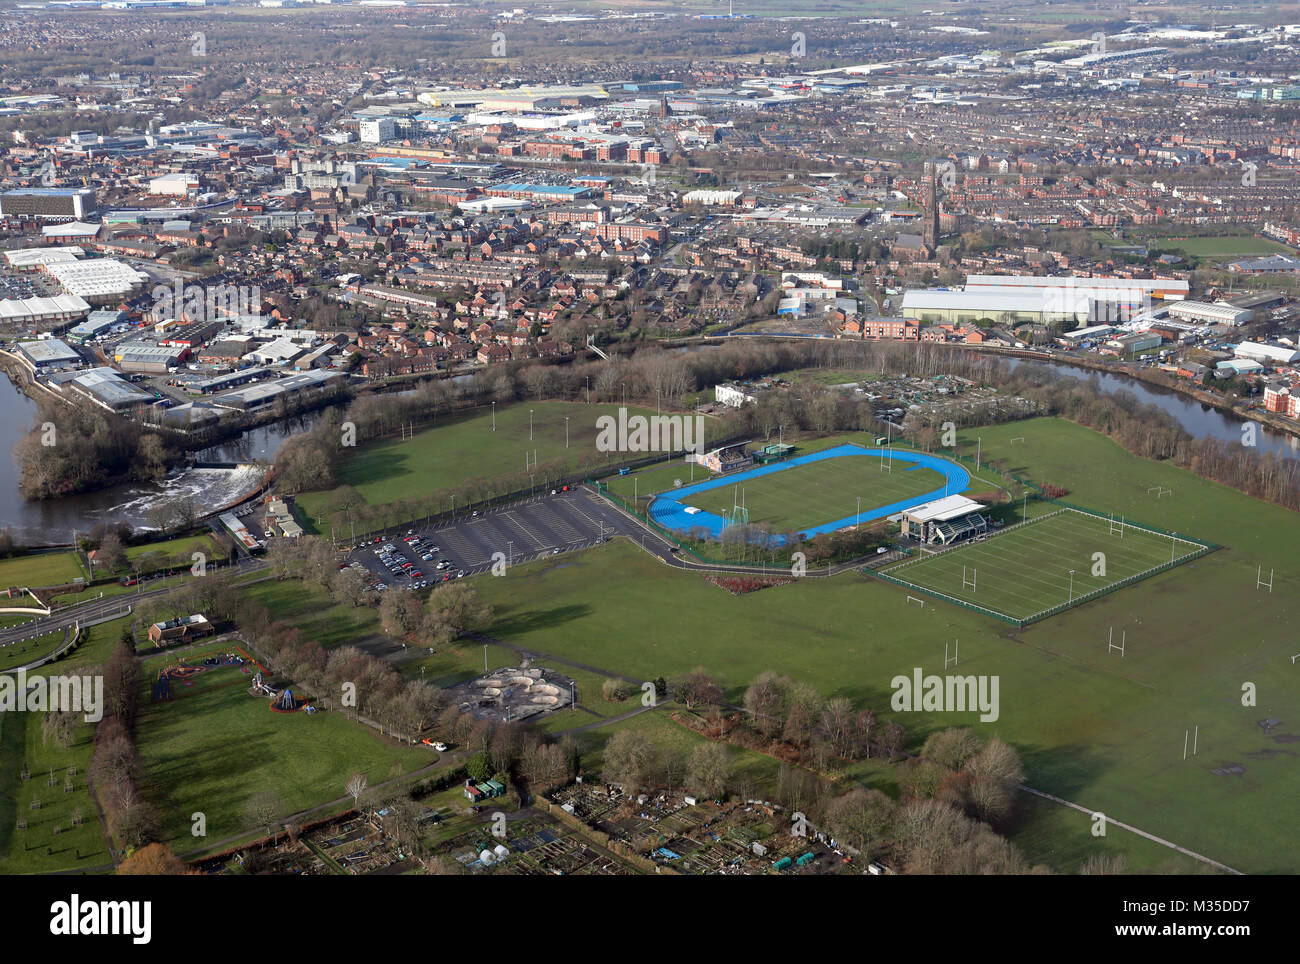 aerial view of Victoria Park & Warrington town centre, Cheshire, UK Stock Photo